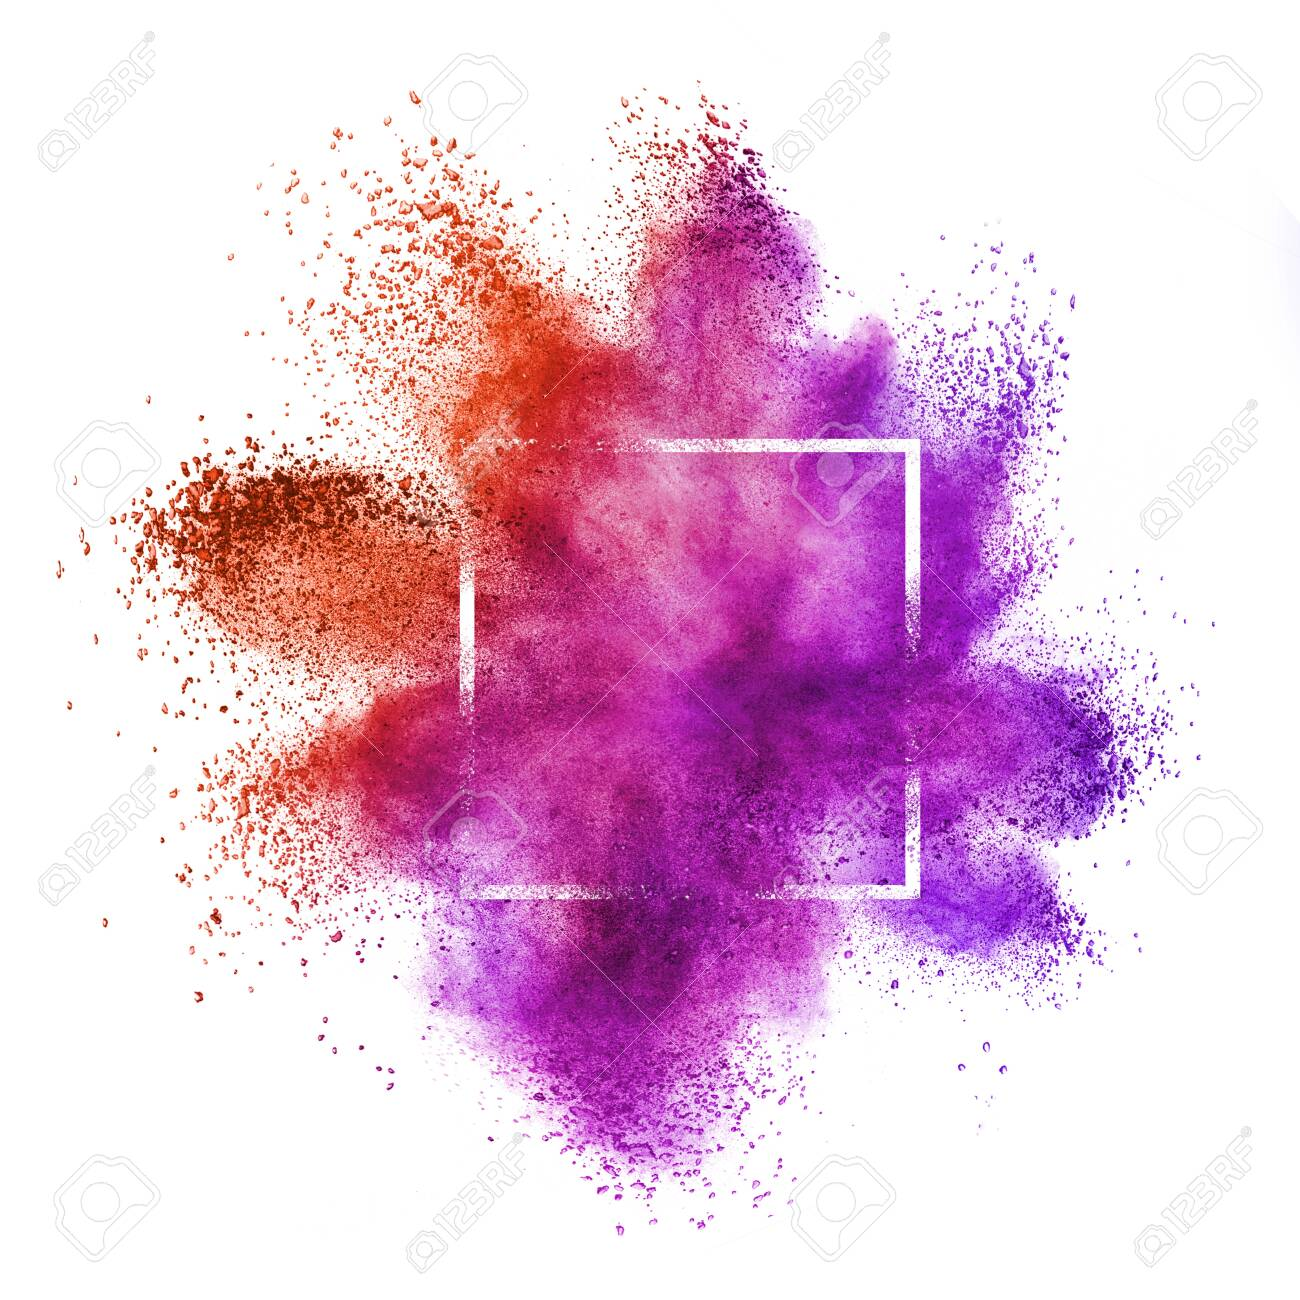 Square frame with abstract dust or powder splash in red and purple colors on a white background, copy space. - 145565014